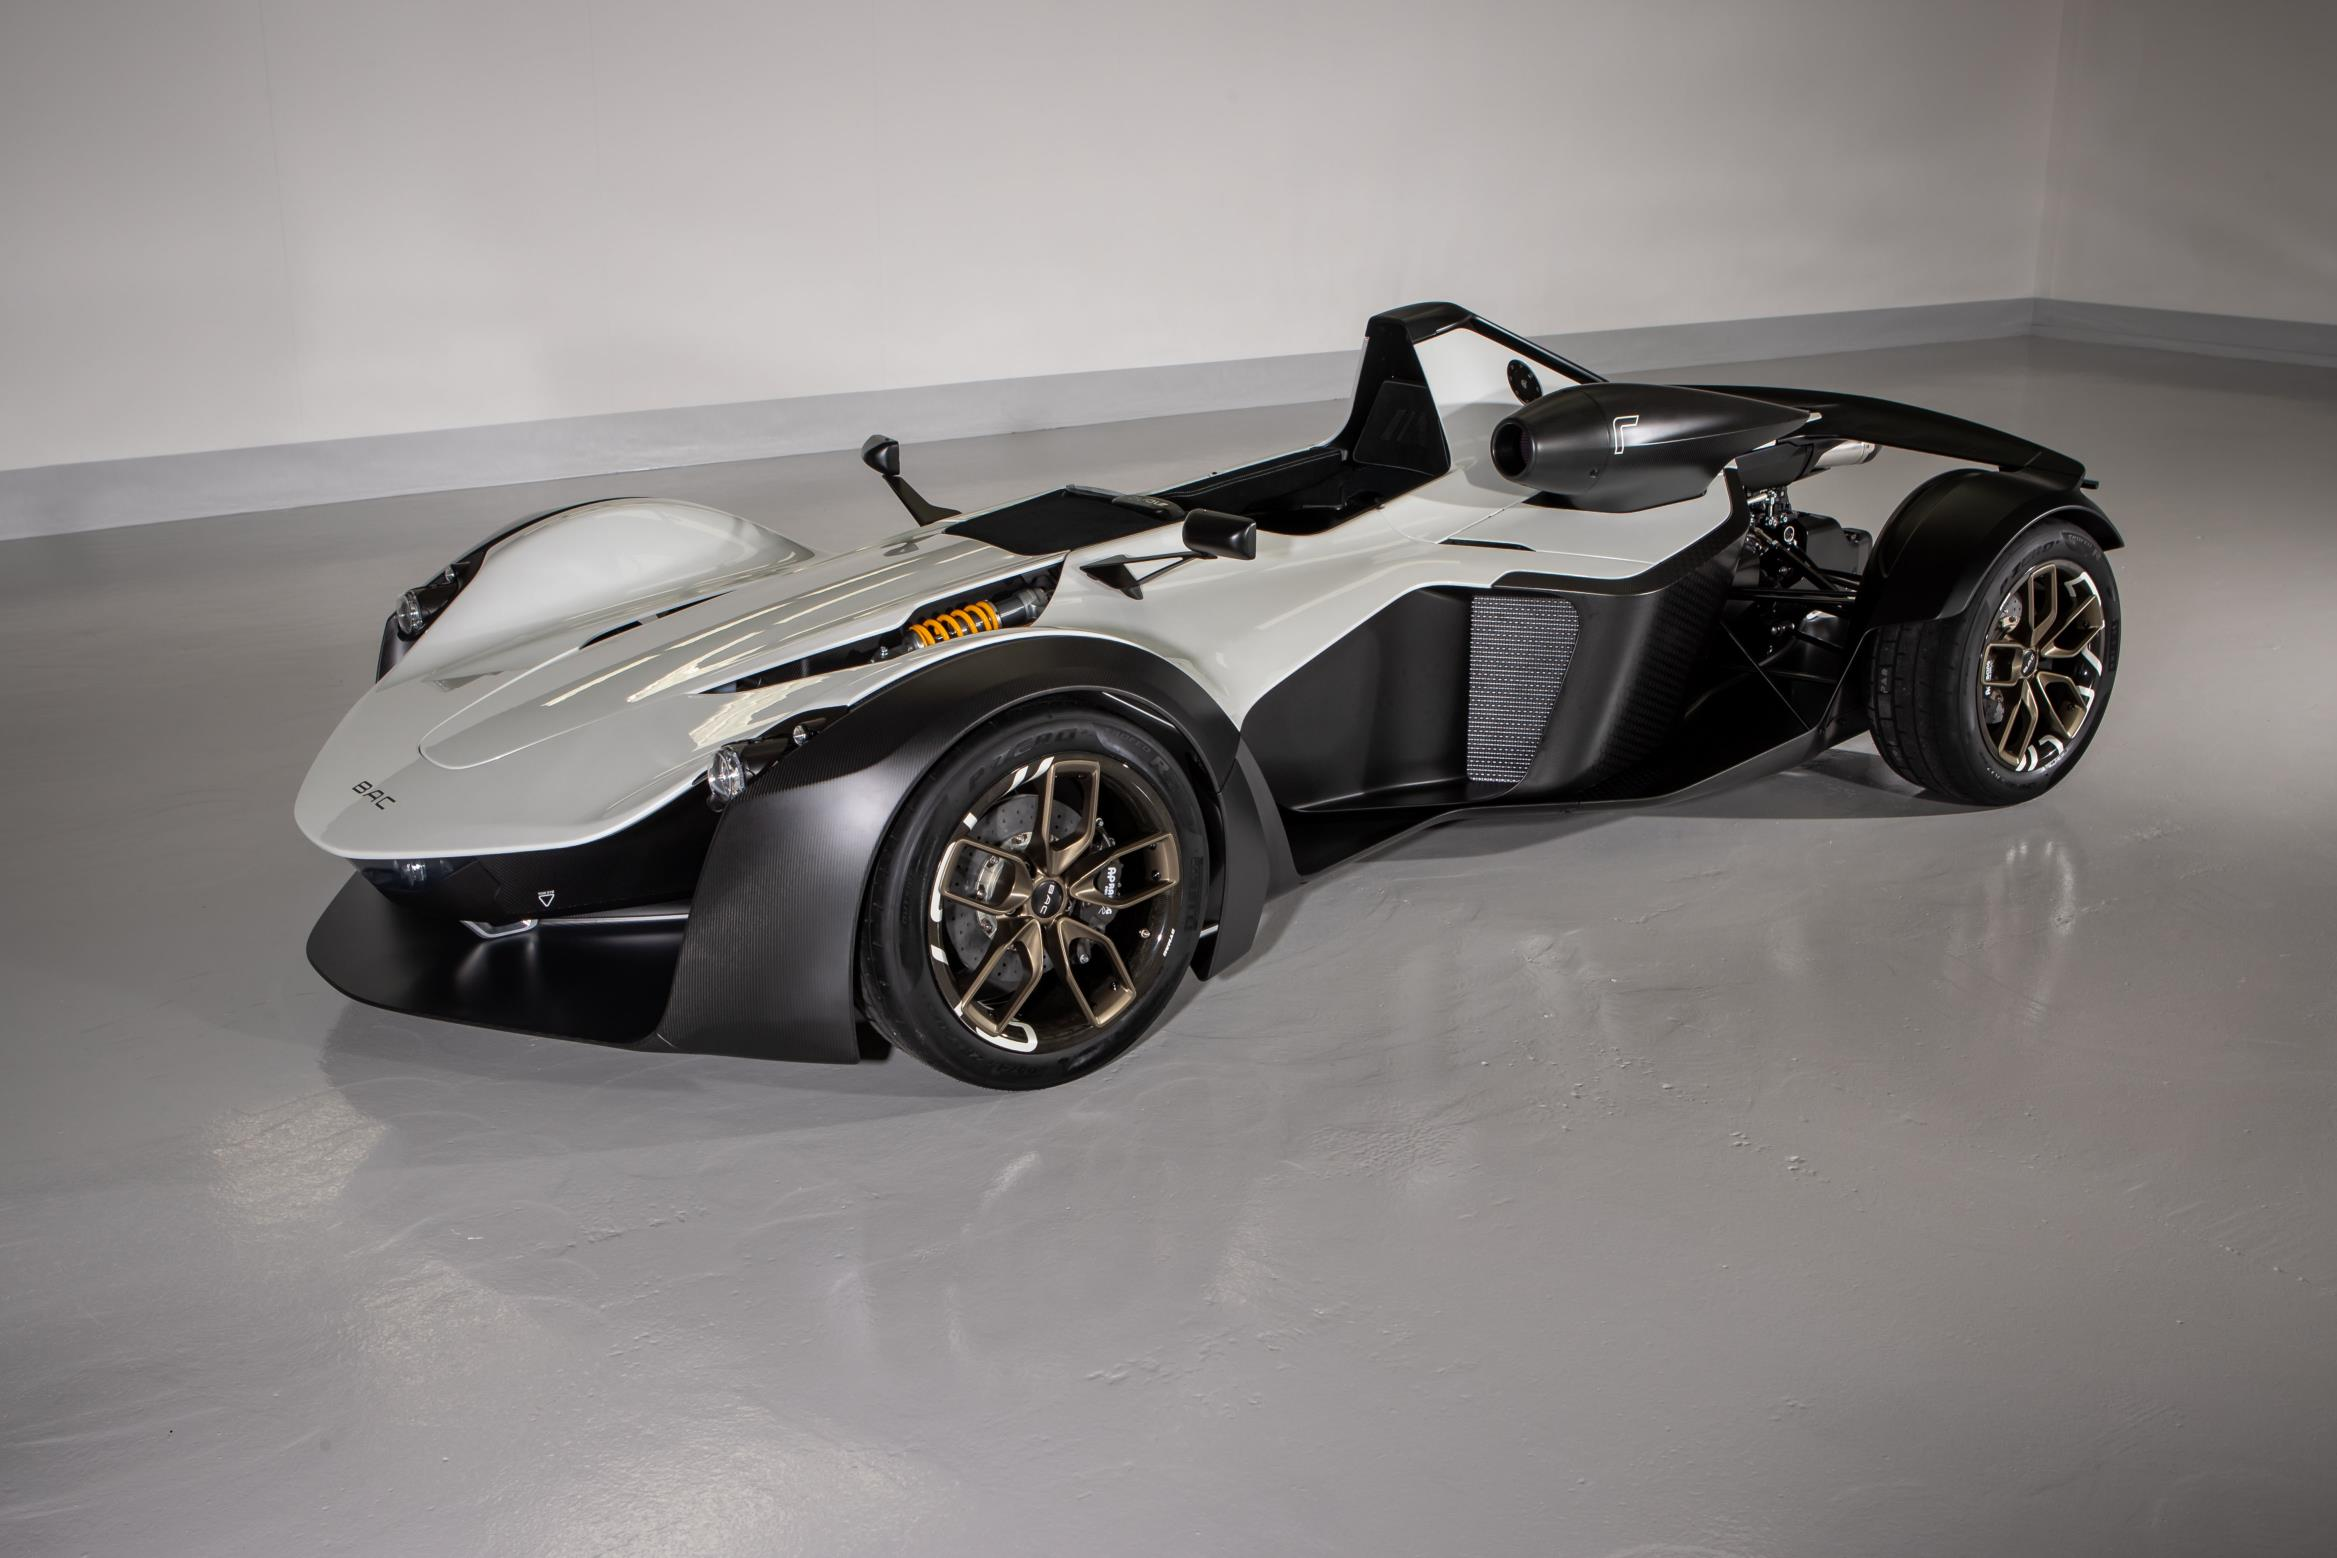 Bac Mono For Sale >> New BAC Mono R Unleashed at Goodwood 2019 - GTspirit